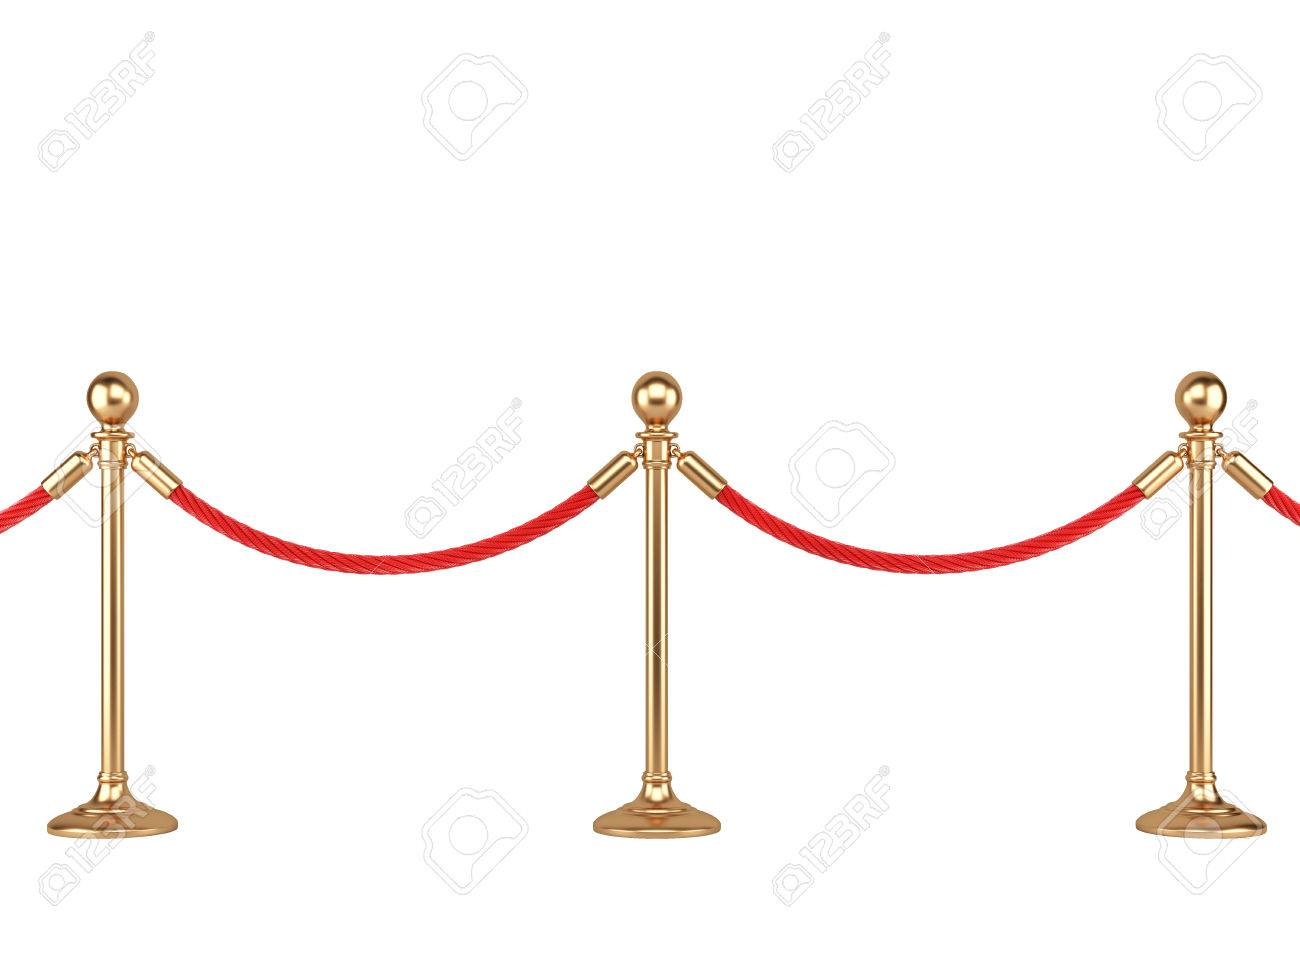 stanchions gold stanchions with rope isolated on white background